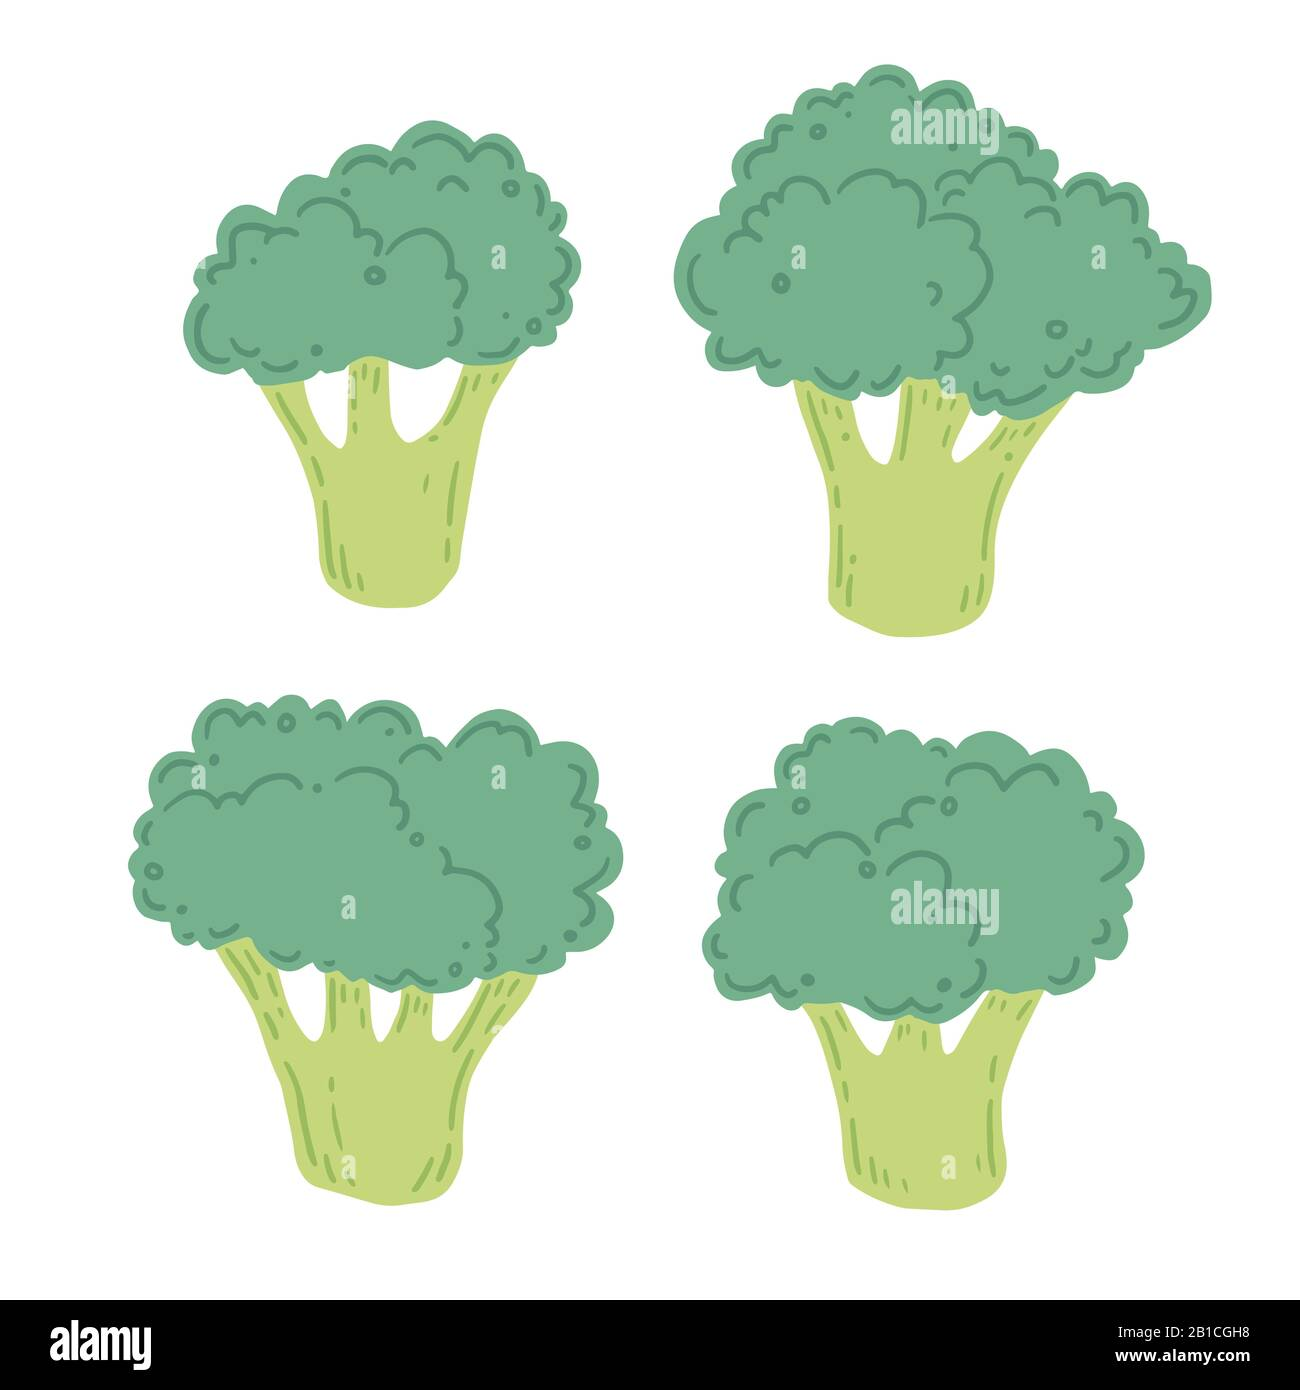 broccoli vector illustration isolated set concept of healthy food vegetable for background icon design broccoli have abstract cartoon hand drawn style stock vector image art alamy alamy